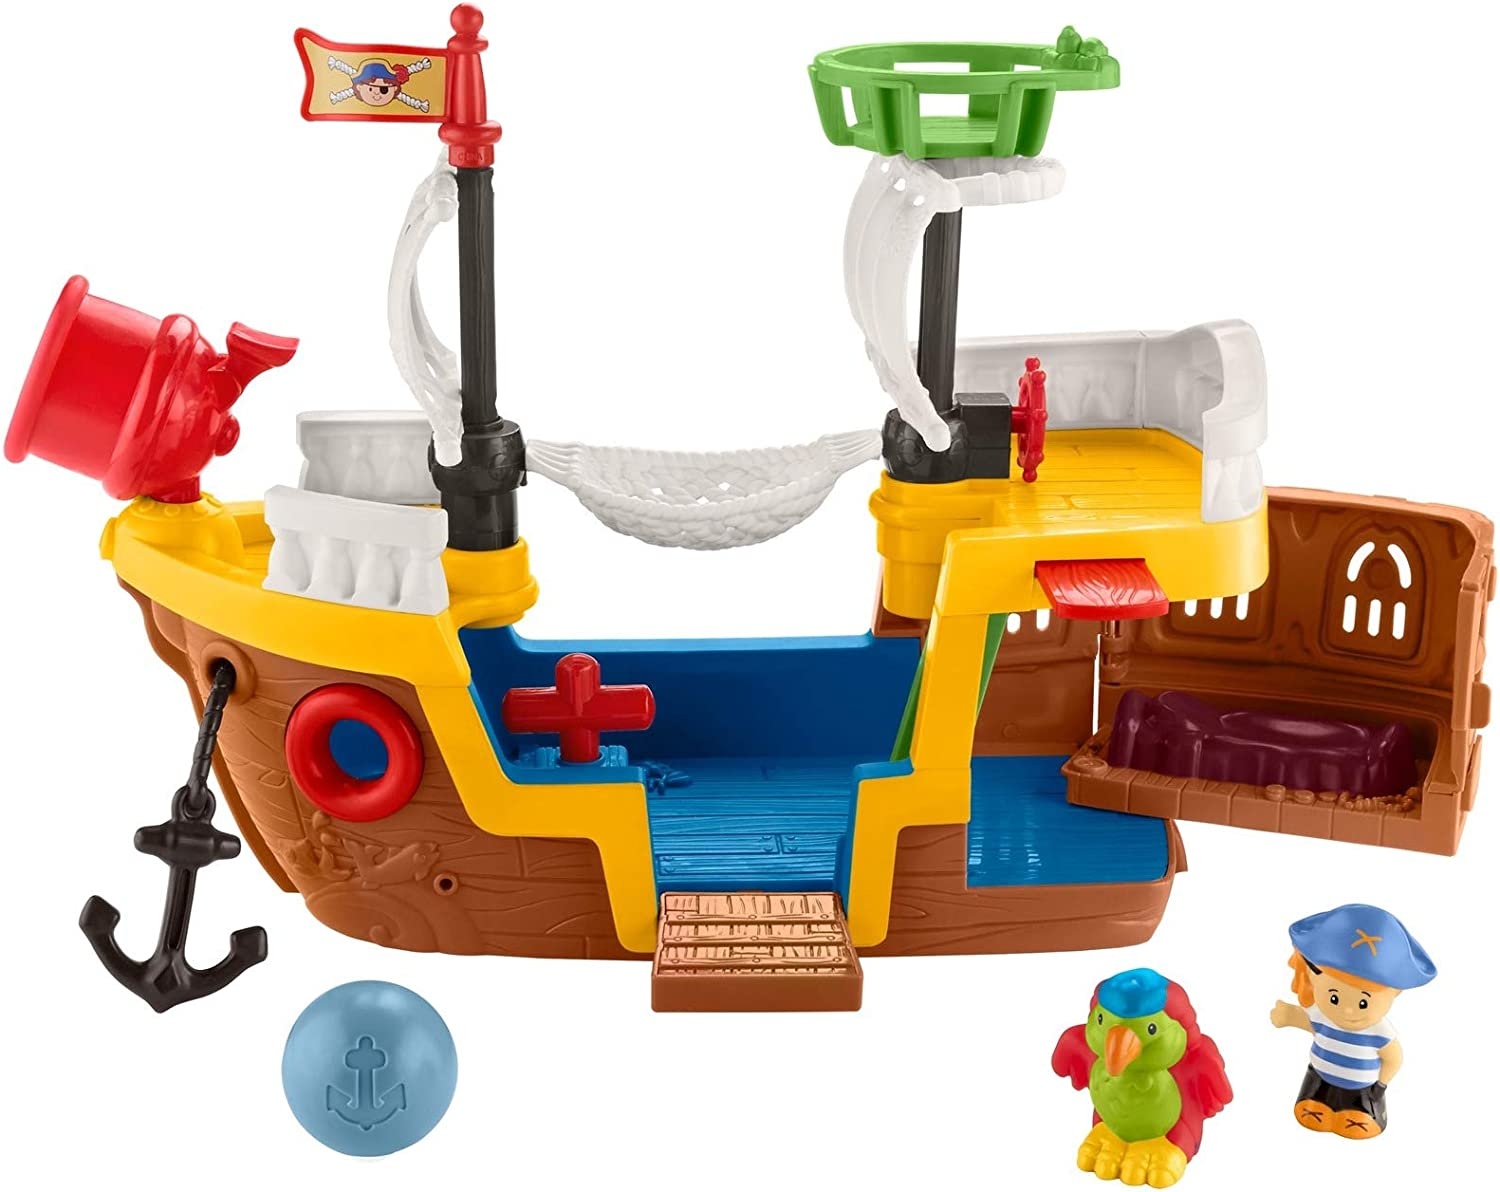 Fisher-Price Little People Pirate Ship playset with music, sounds and action for toddlers and preschool kids ages 1-5 years